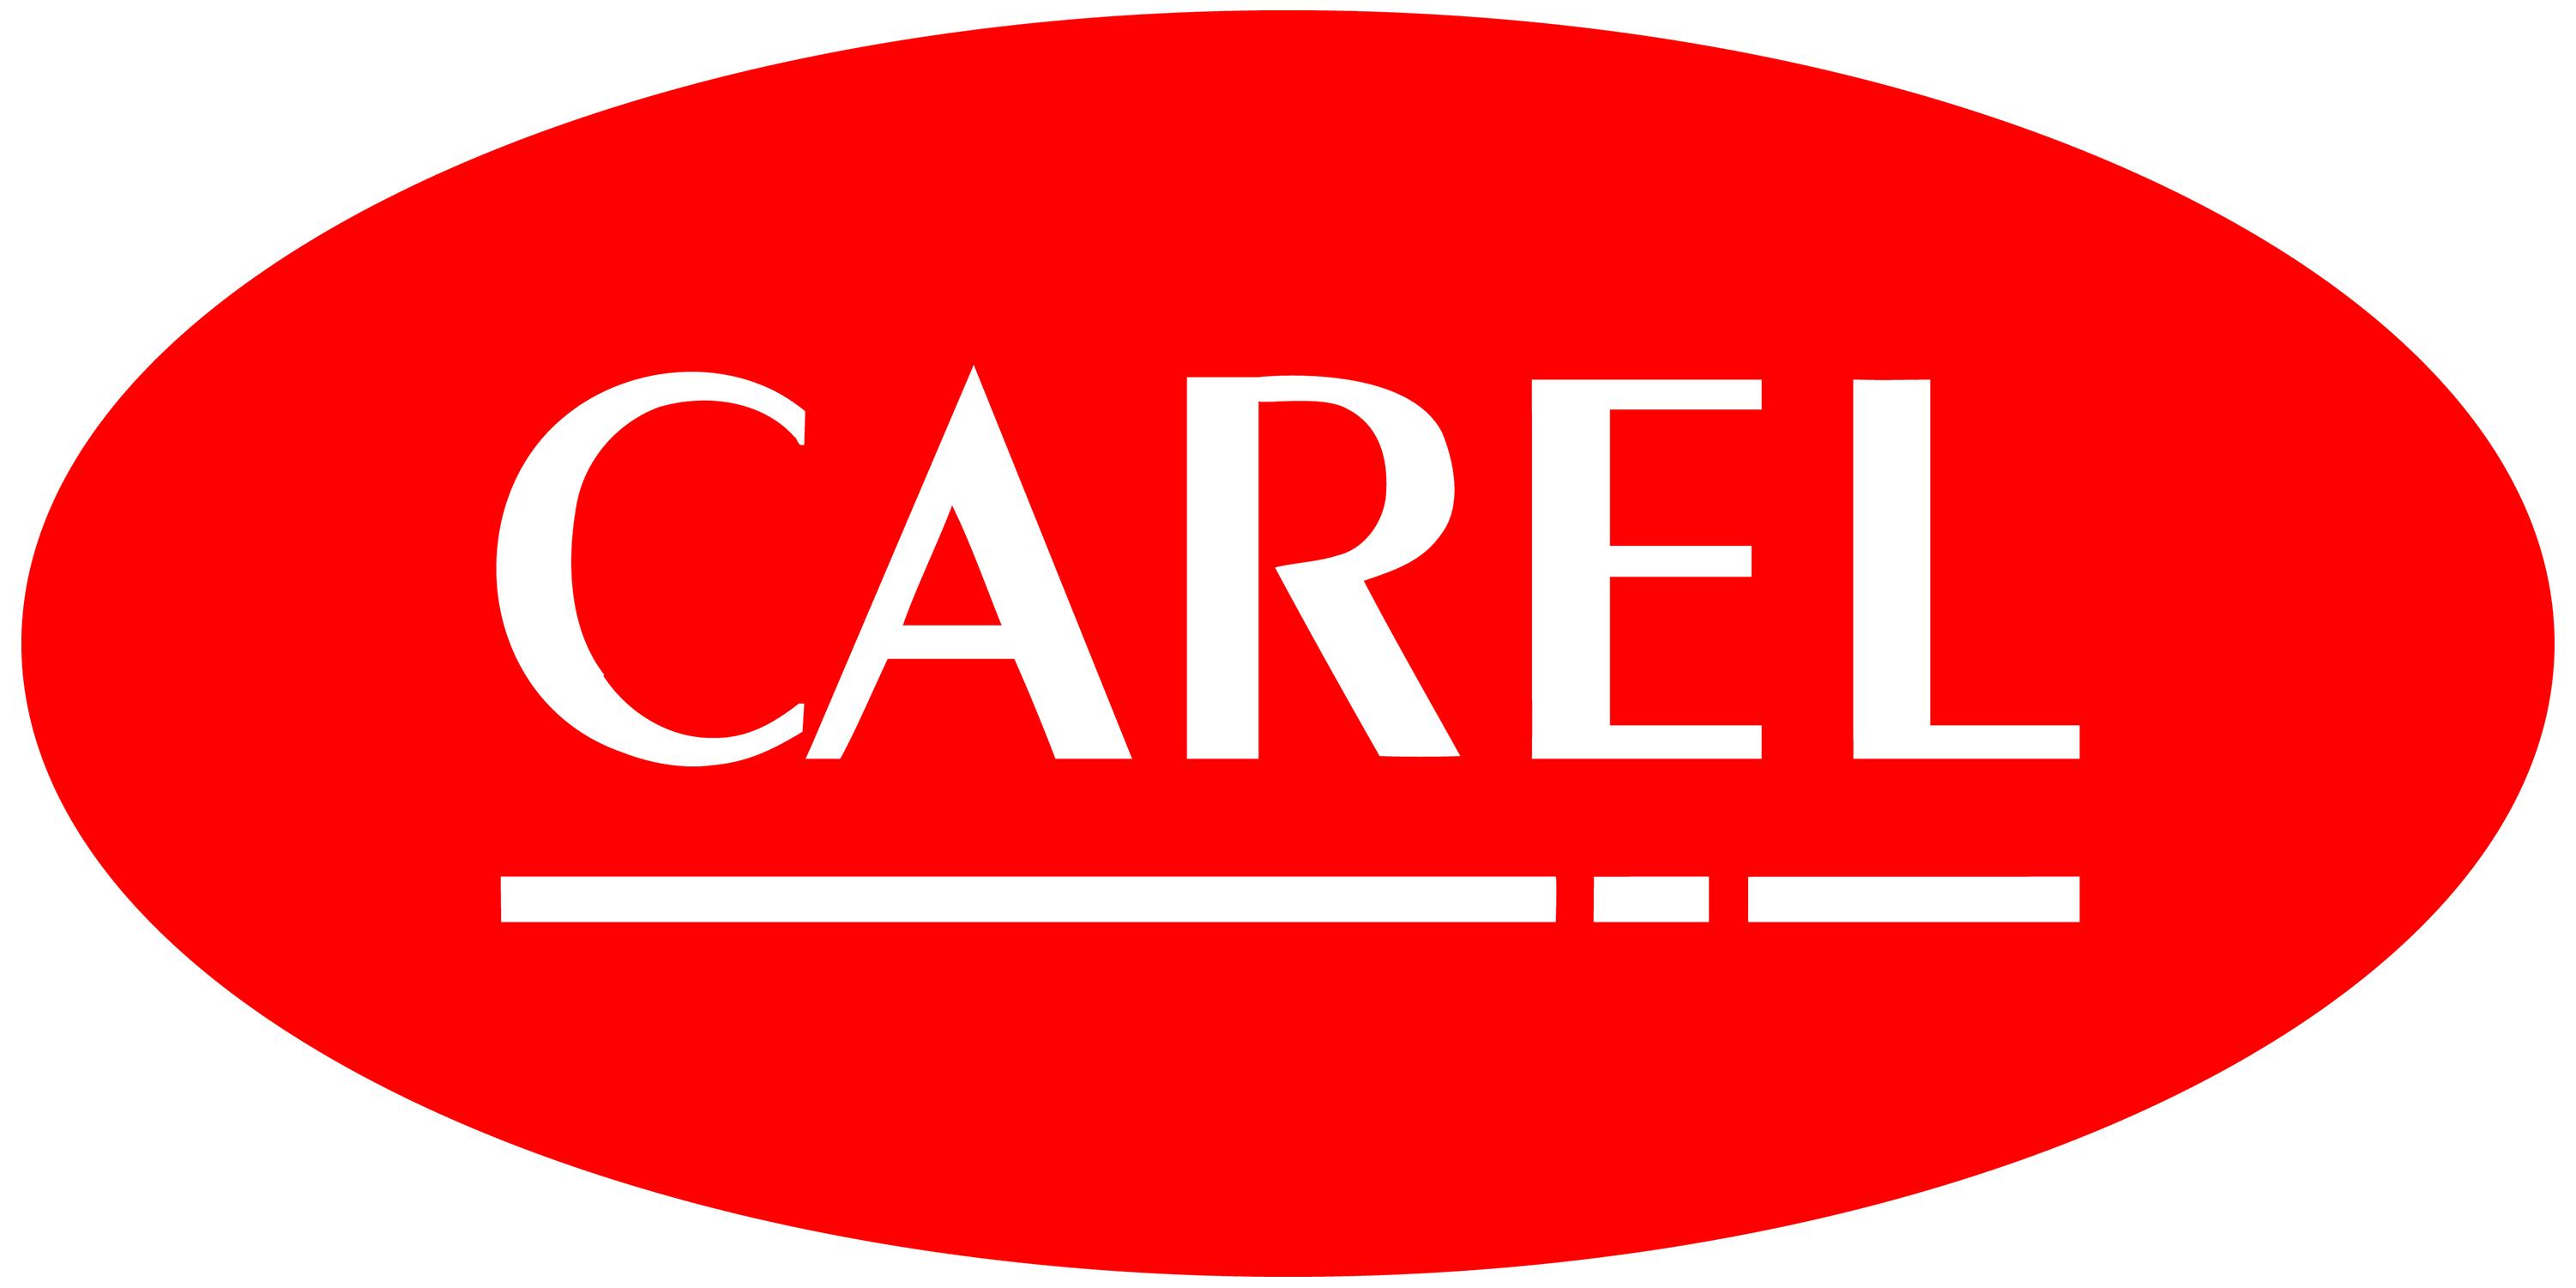 CAREL - CAREL Electronic (Suzhou)